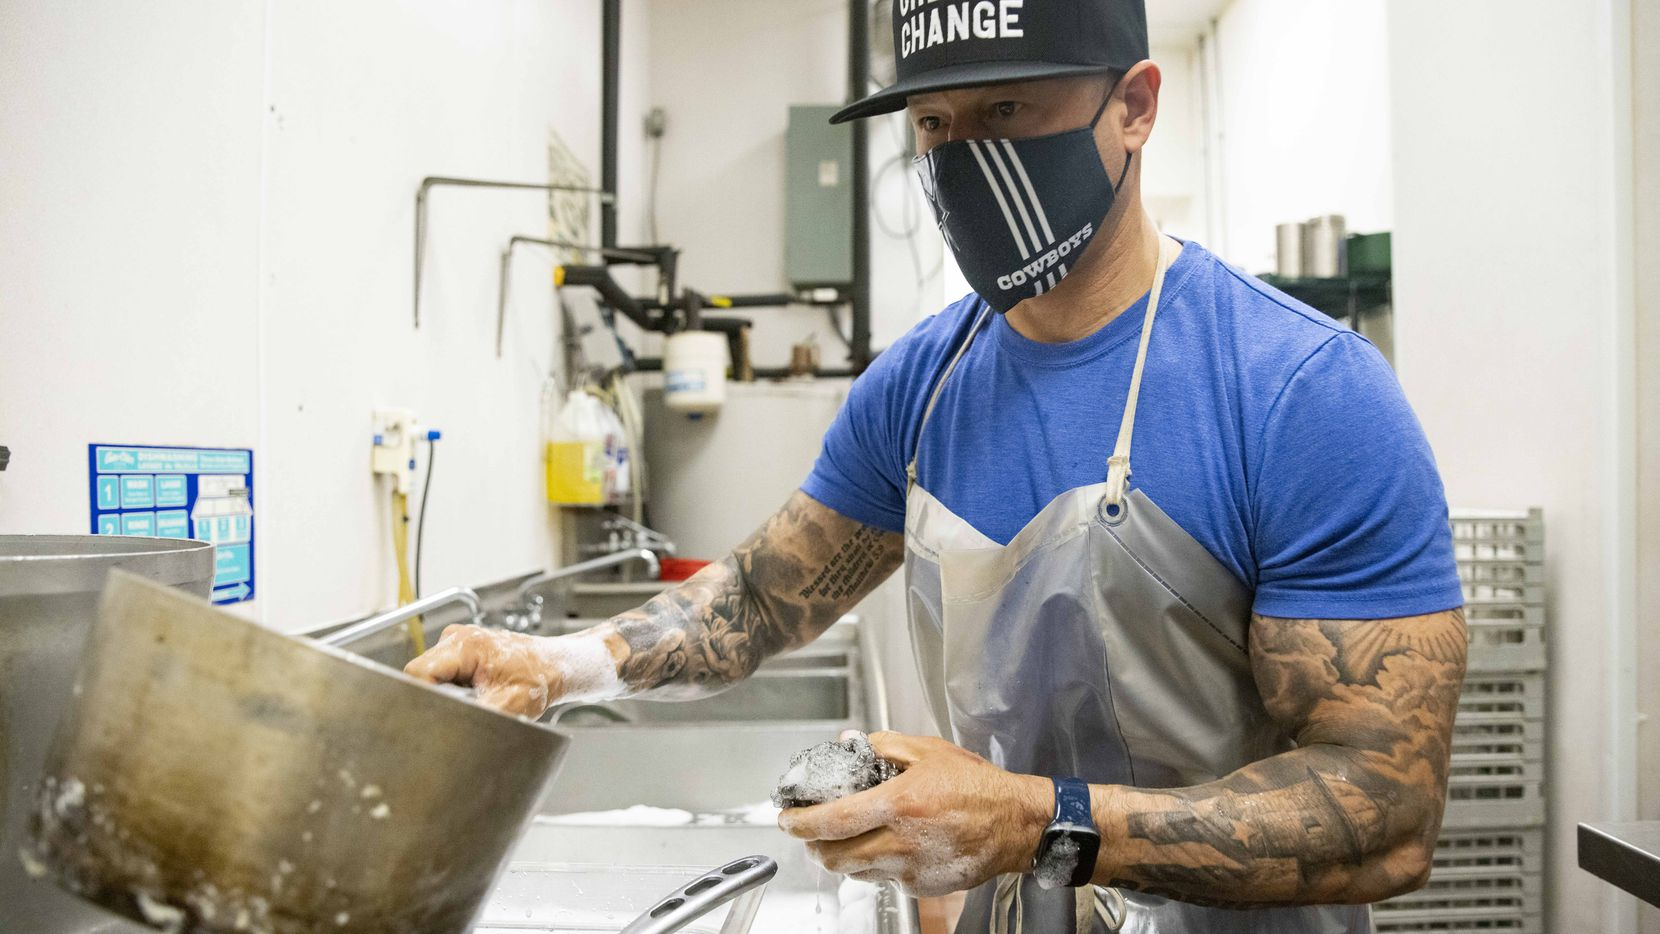 Dallas Police Chief Eddie García checks a pot before washing it during his shift as an undercover dishwasher at Café Momentum, which employs formerly incarcerated youth, on Friday, May 14, 2021, in Dallas. (Juan Figueroa/The Dallas Morning News)